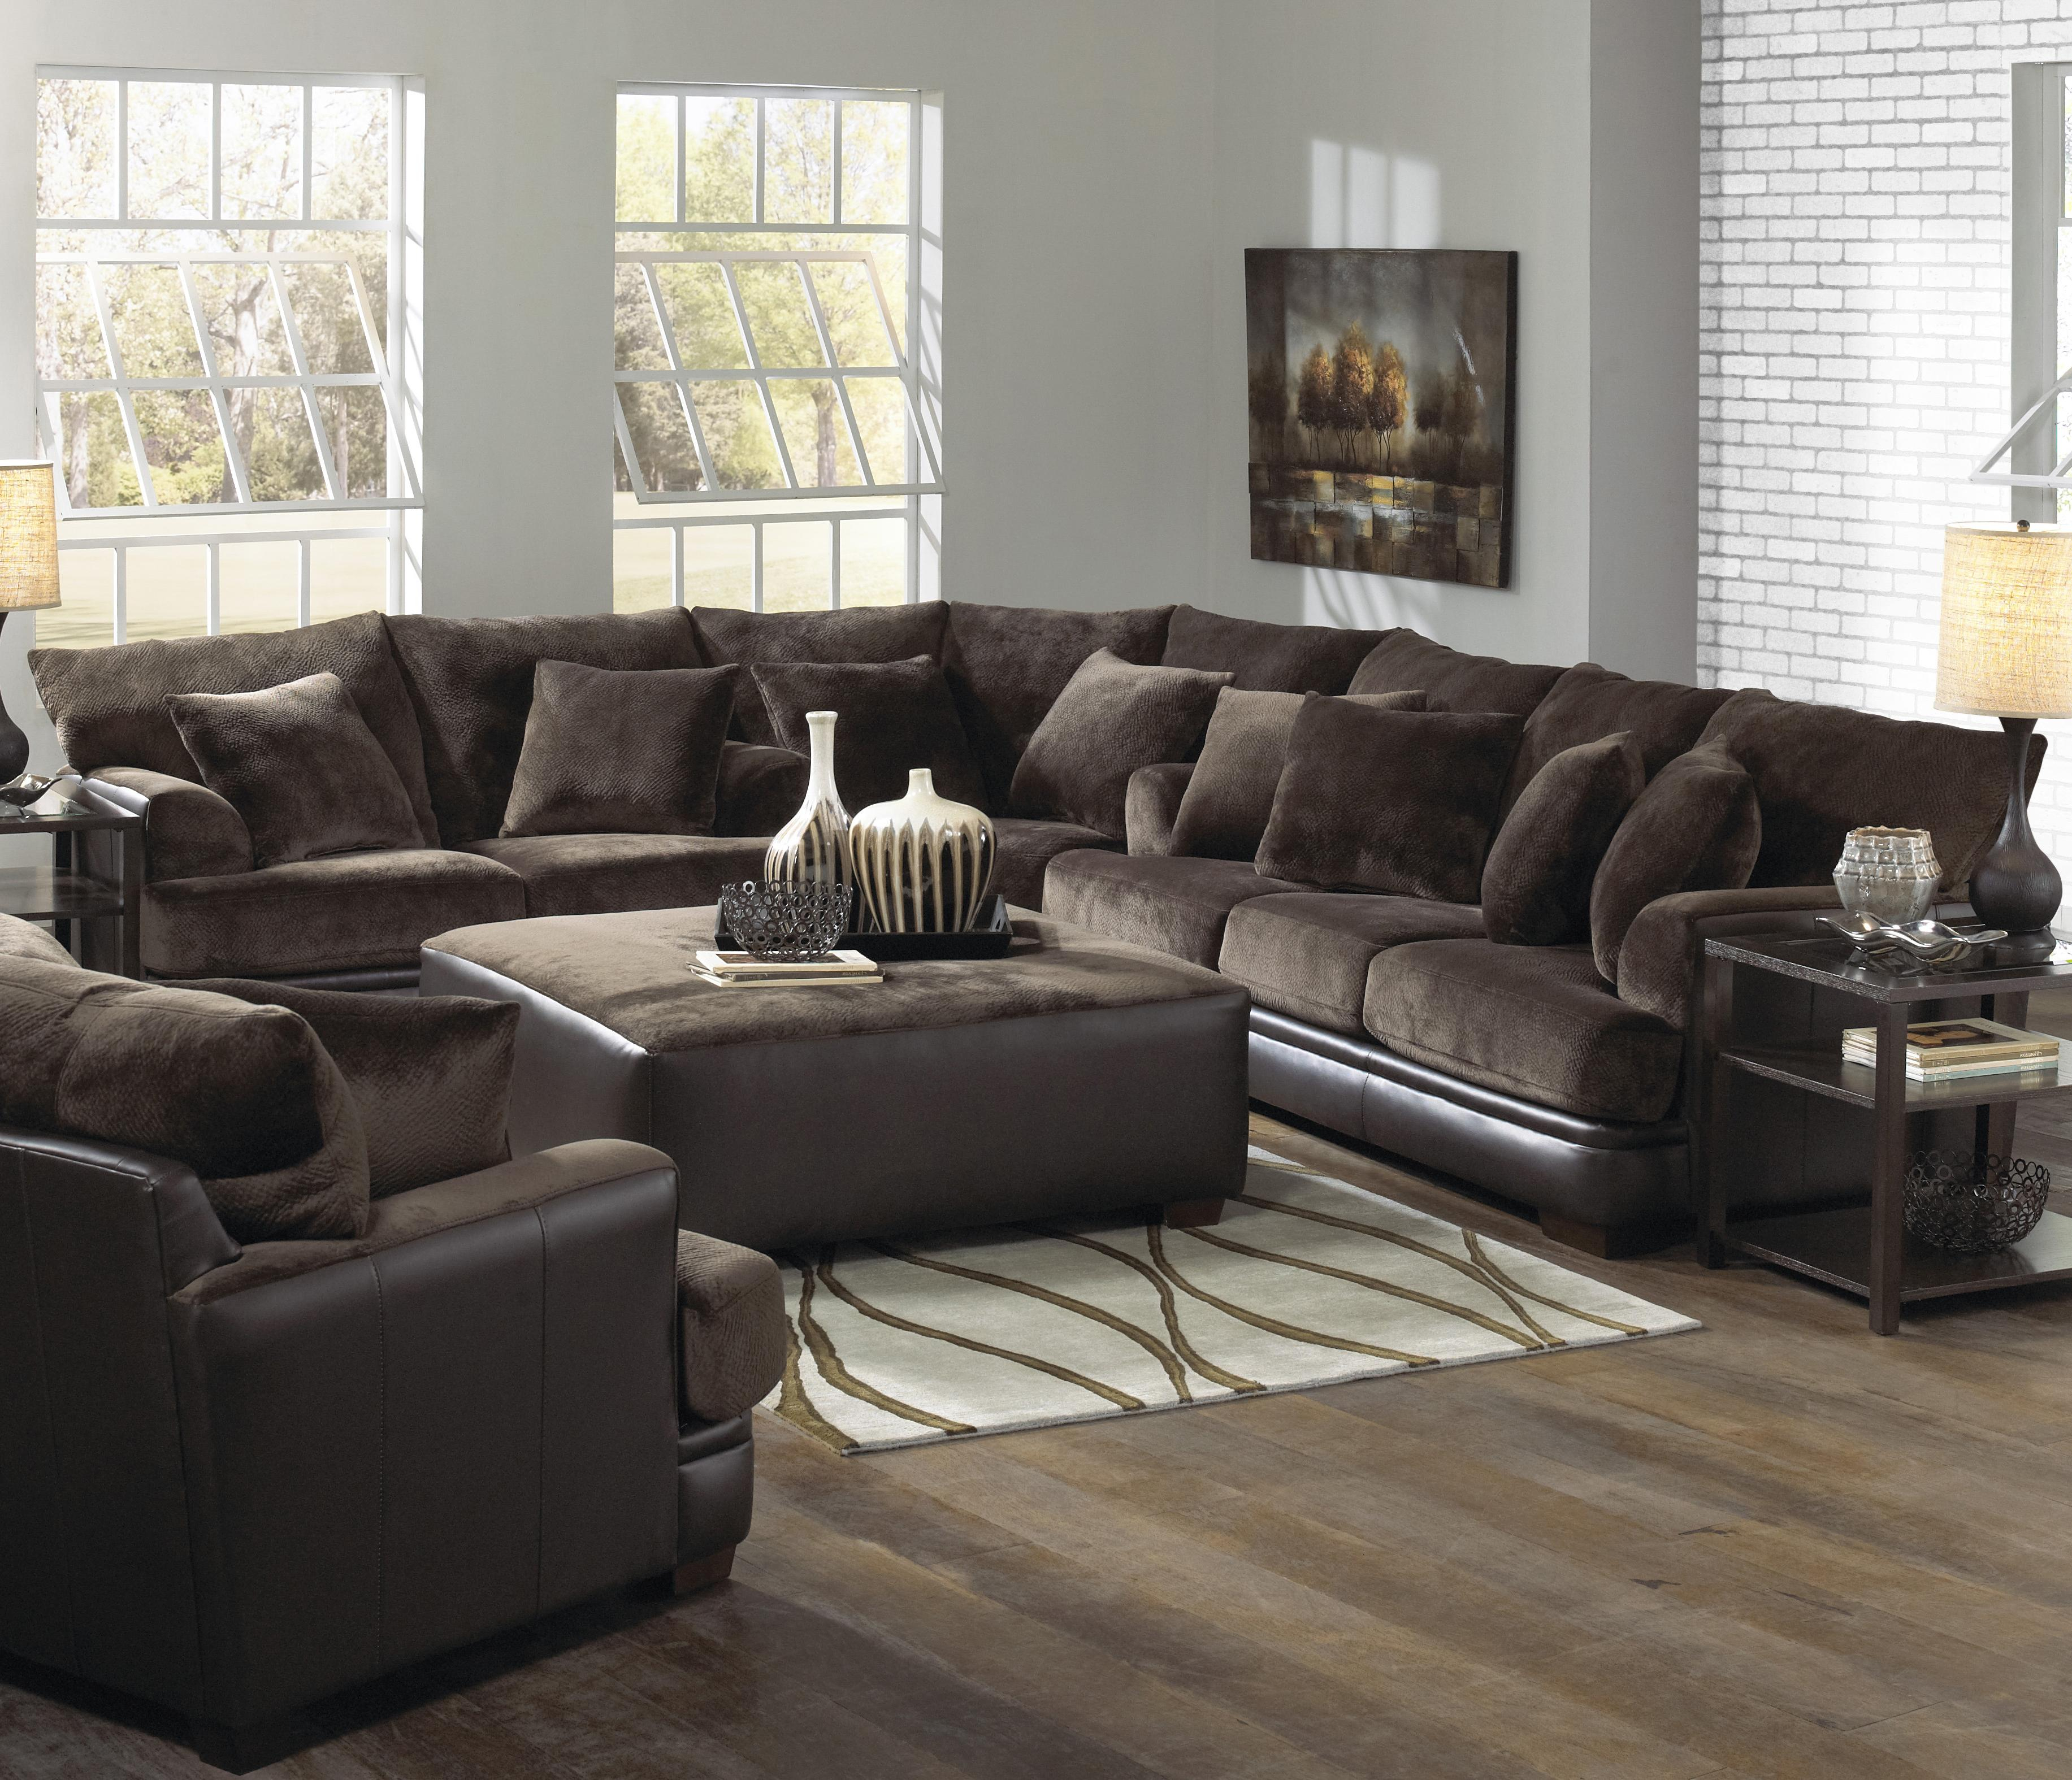 Sofa Comfortable Sectional Living Room Sets For Your Home with 11 Smart Designs of How to Upgrade Discount Living Room Sets Free Shipping